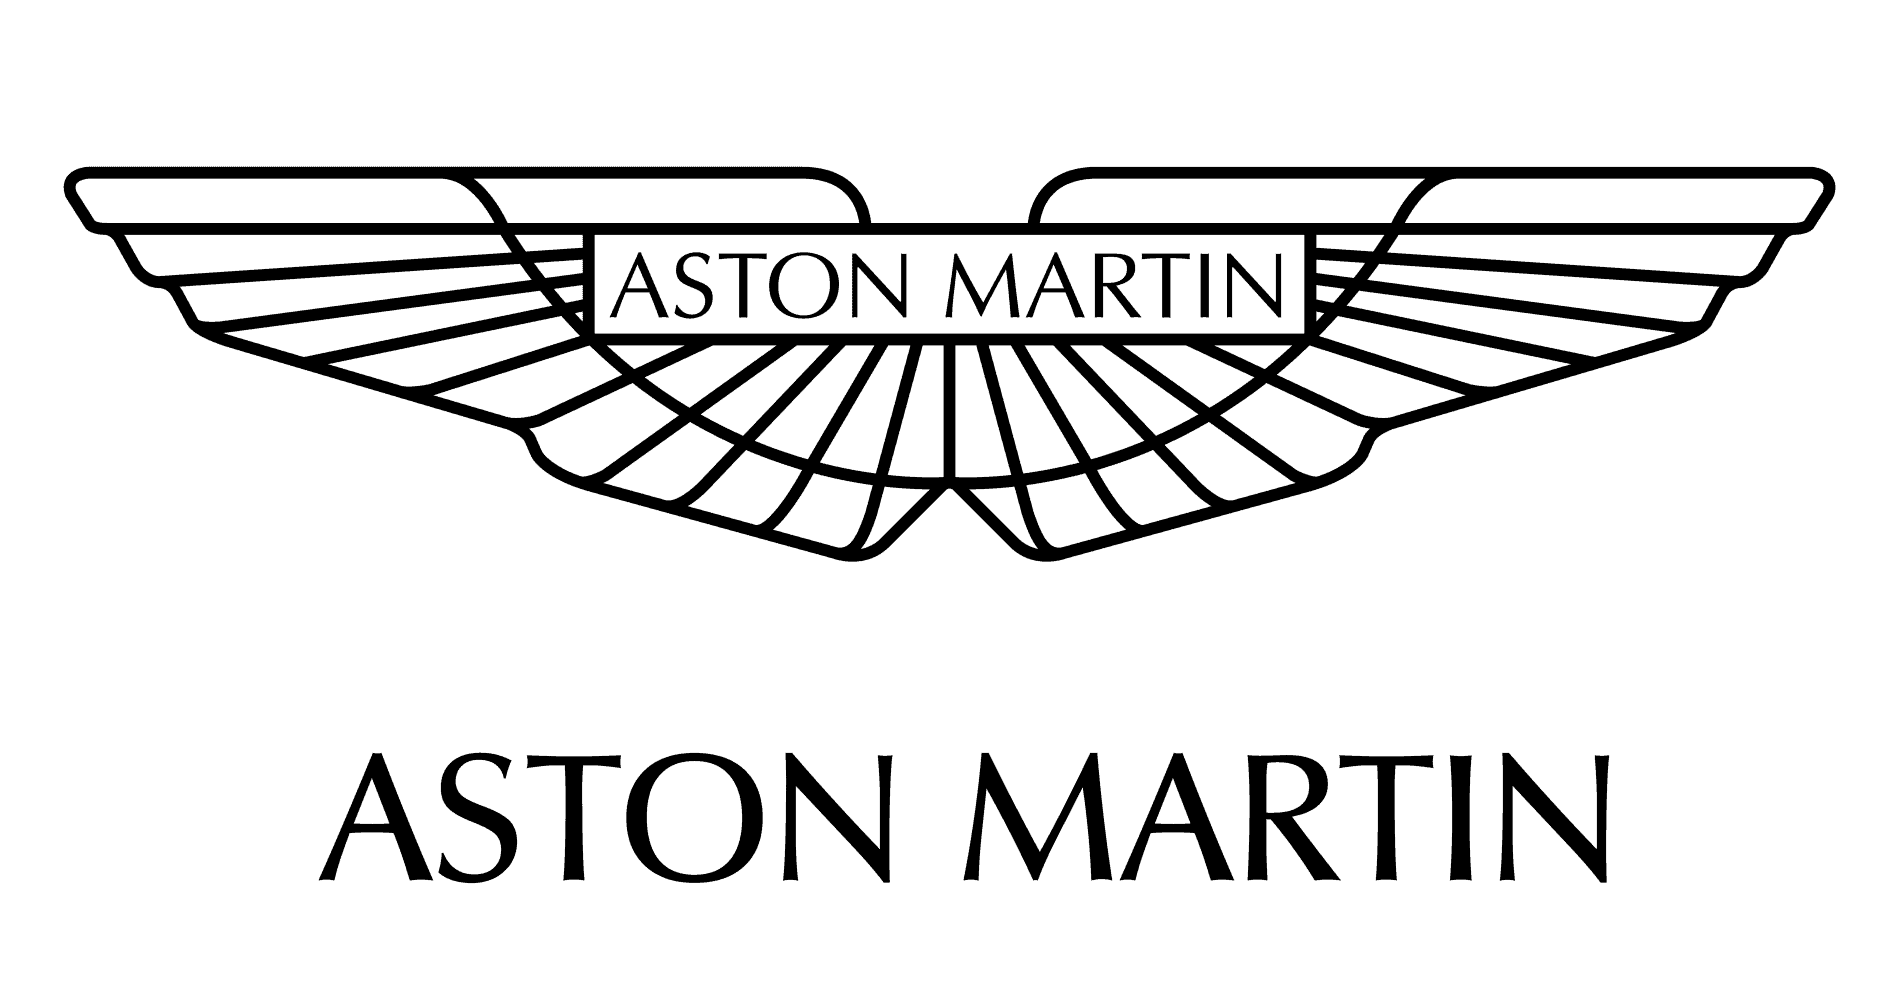 How To Buy Aston Martin Shares Uk With 0 Commission